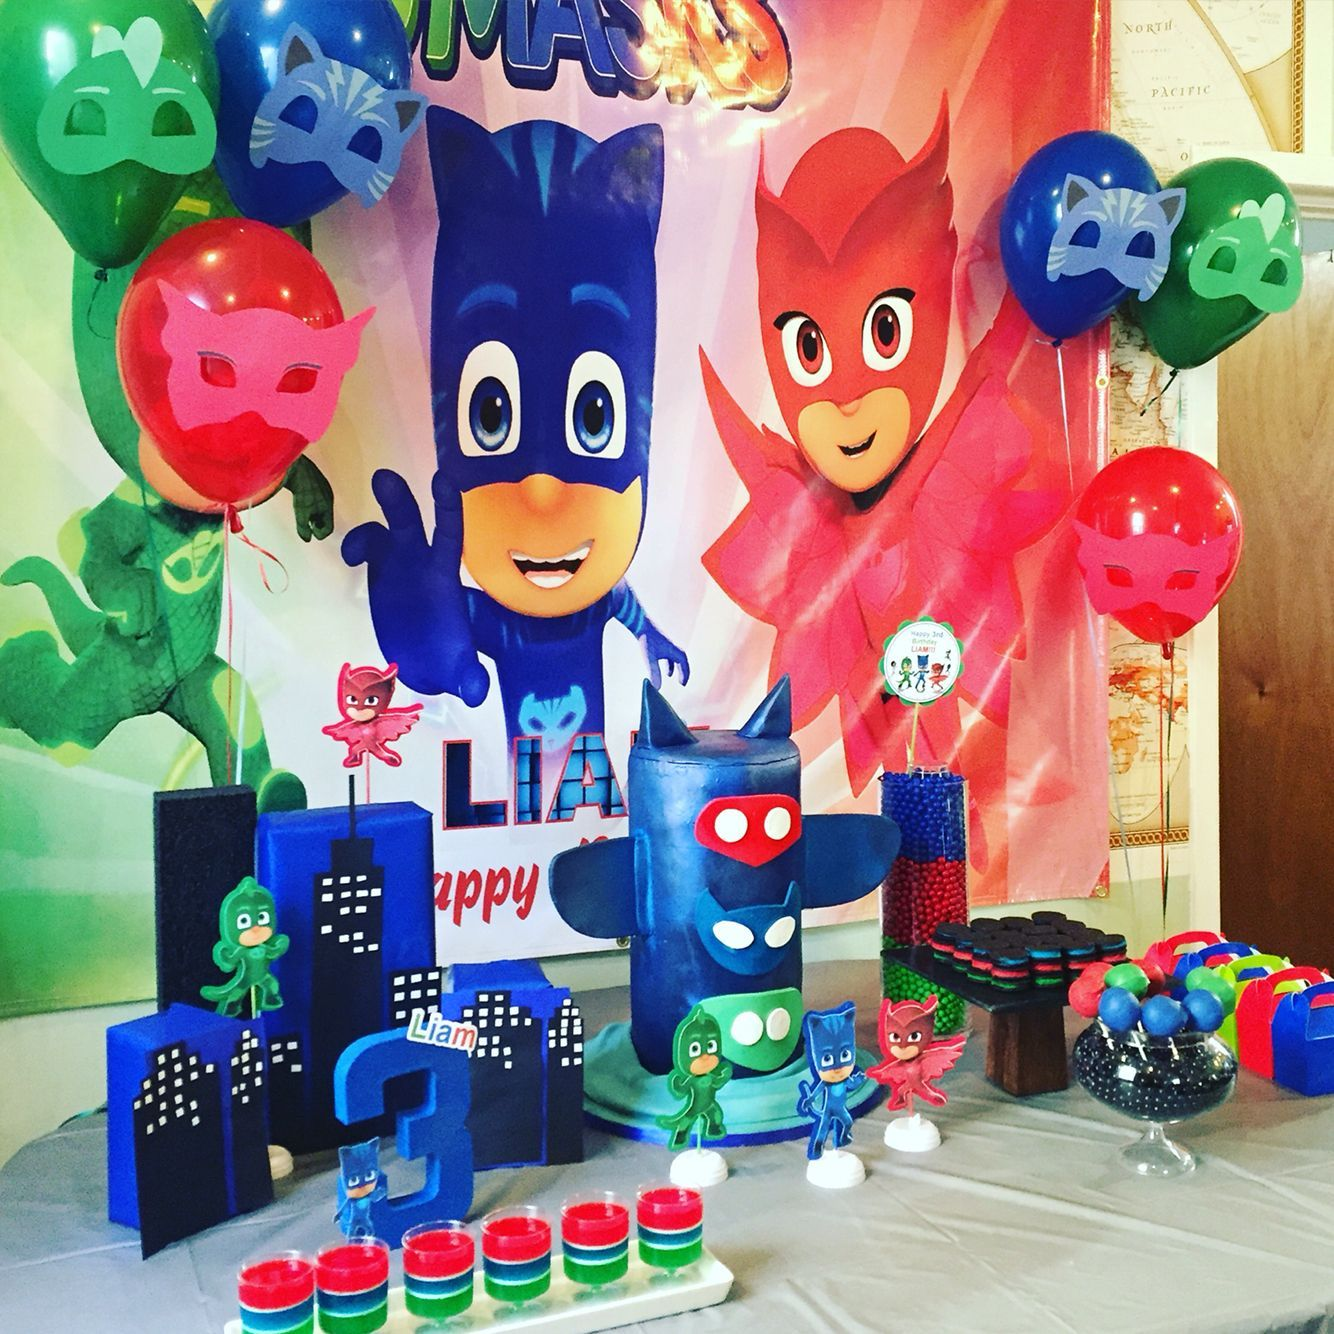 Pj masks birthday theme pj masks birthday party - Ideas fiestas tematicas ...